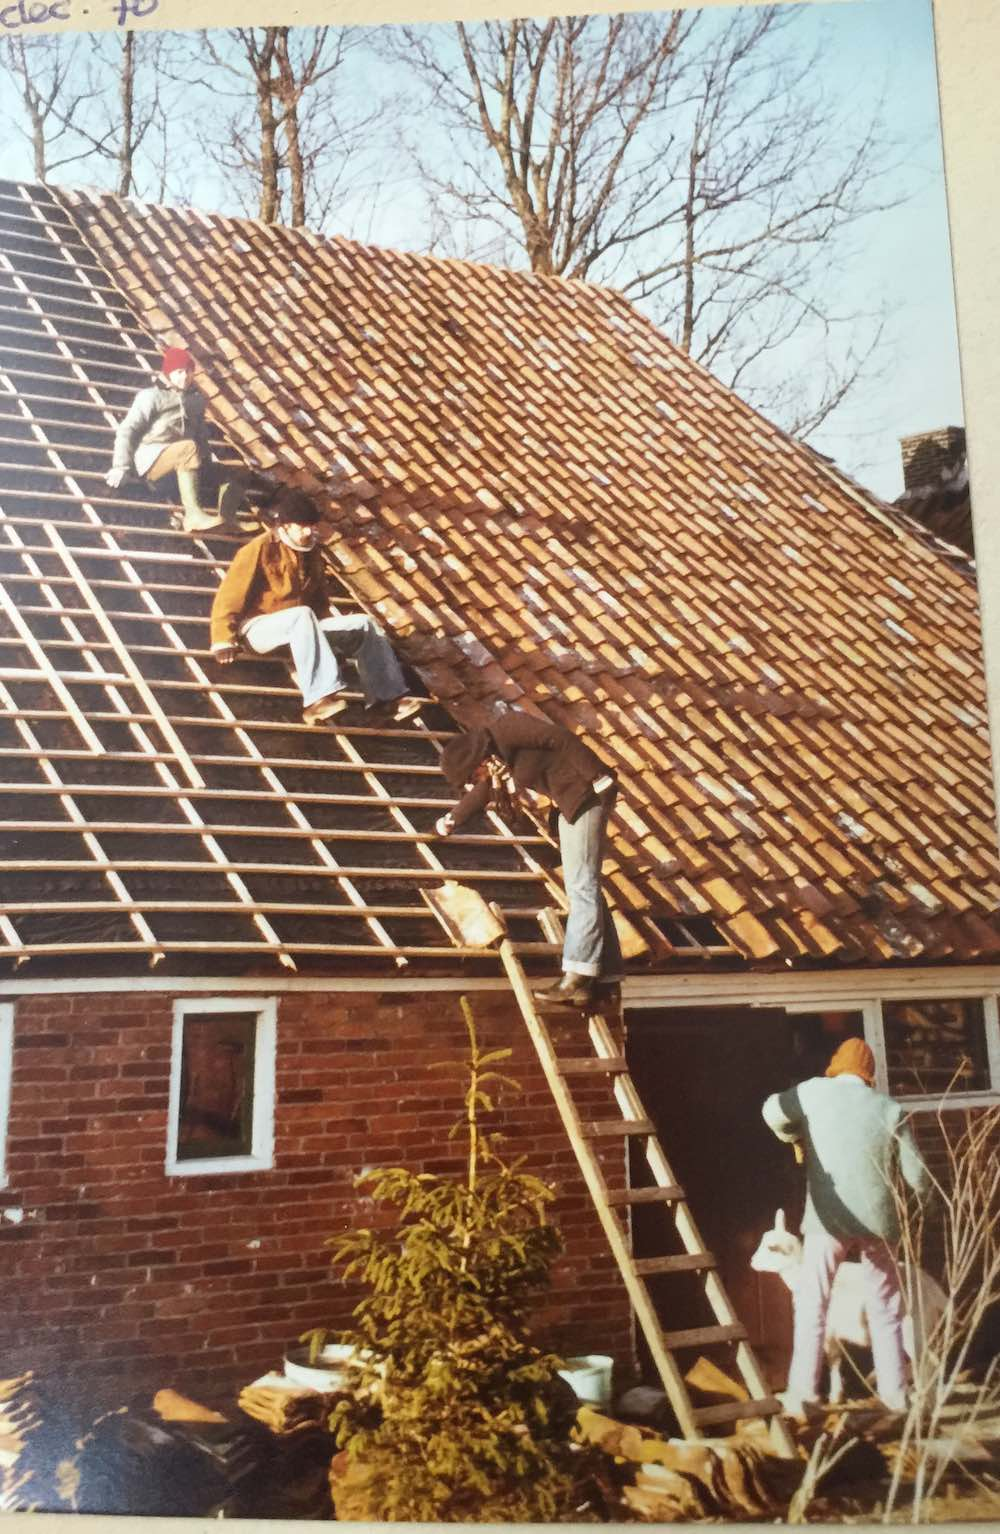 People working on the roof of a barn in Groningen |curlytraveller.com